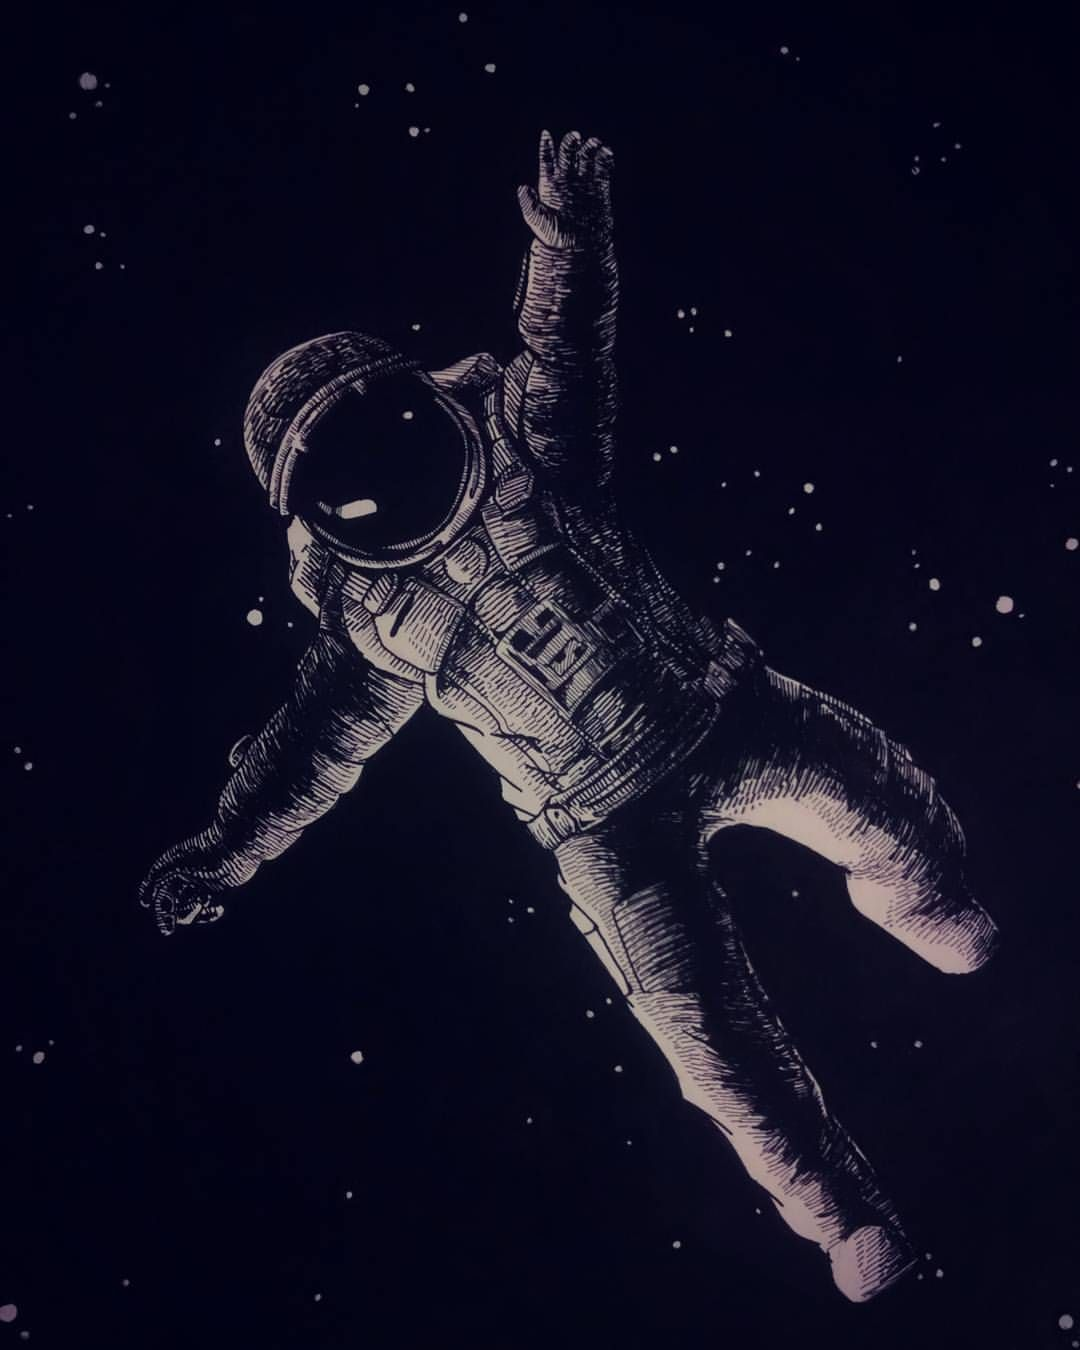 astronaut lost in space wallpaper - photo #18